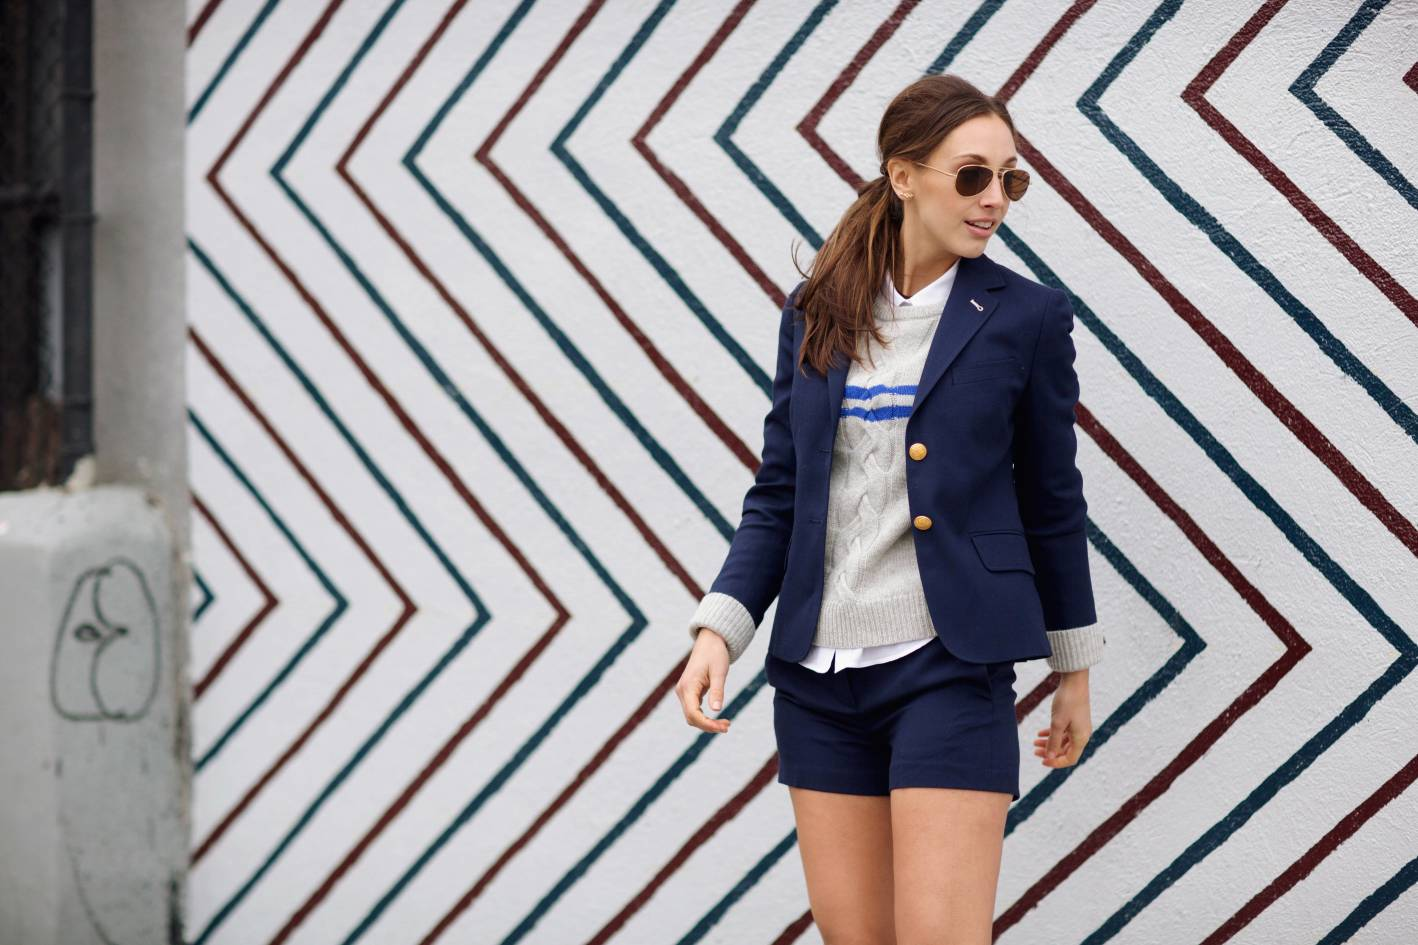 style girlfriend, megan collins, gant rugger, girls in gant rugger